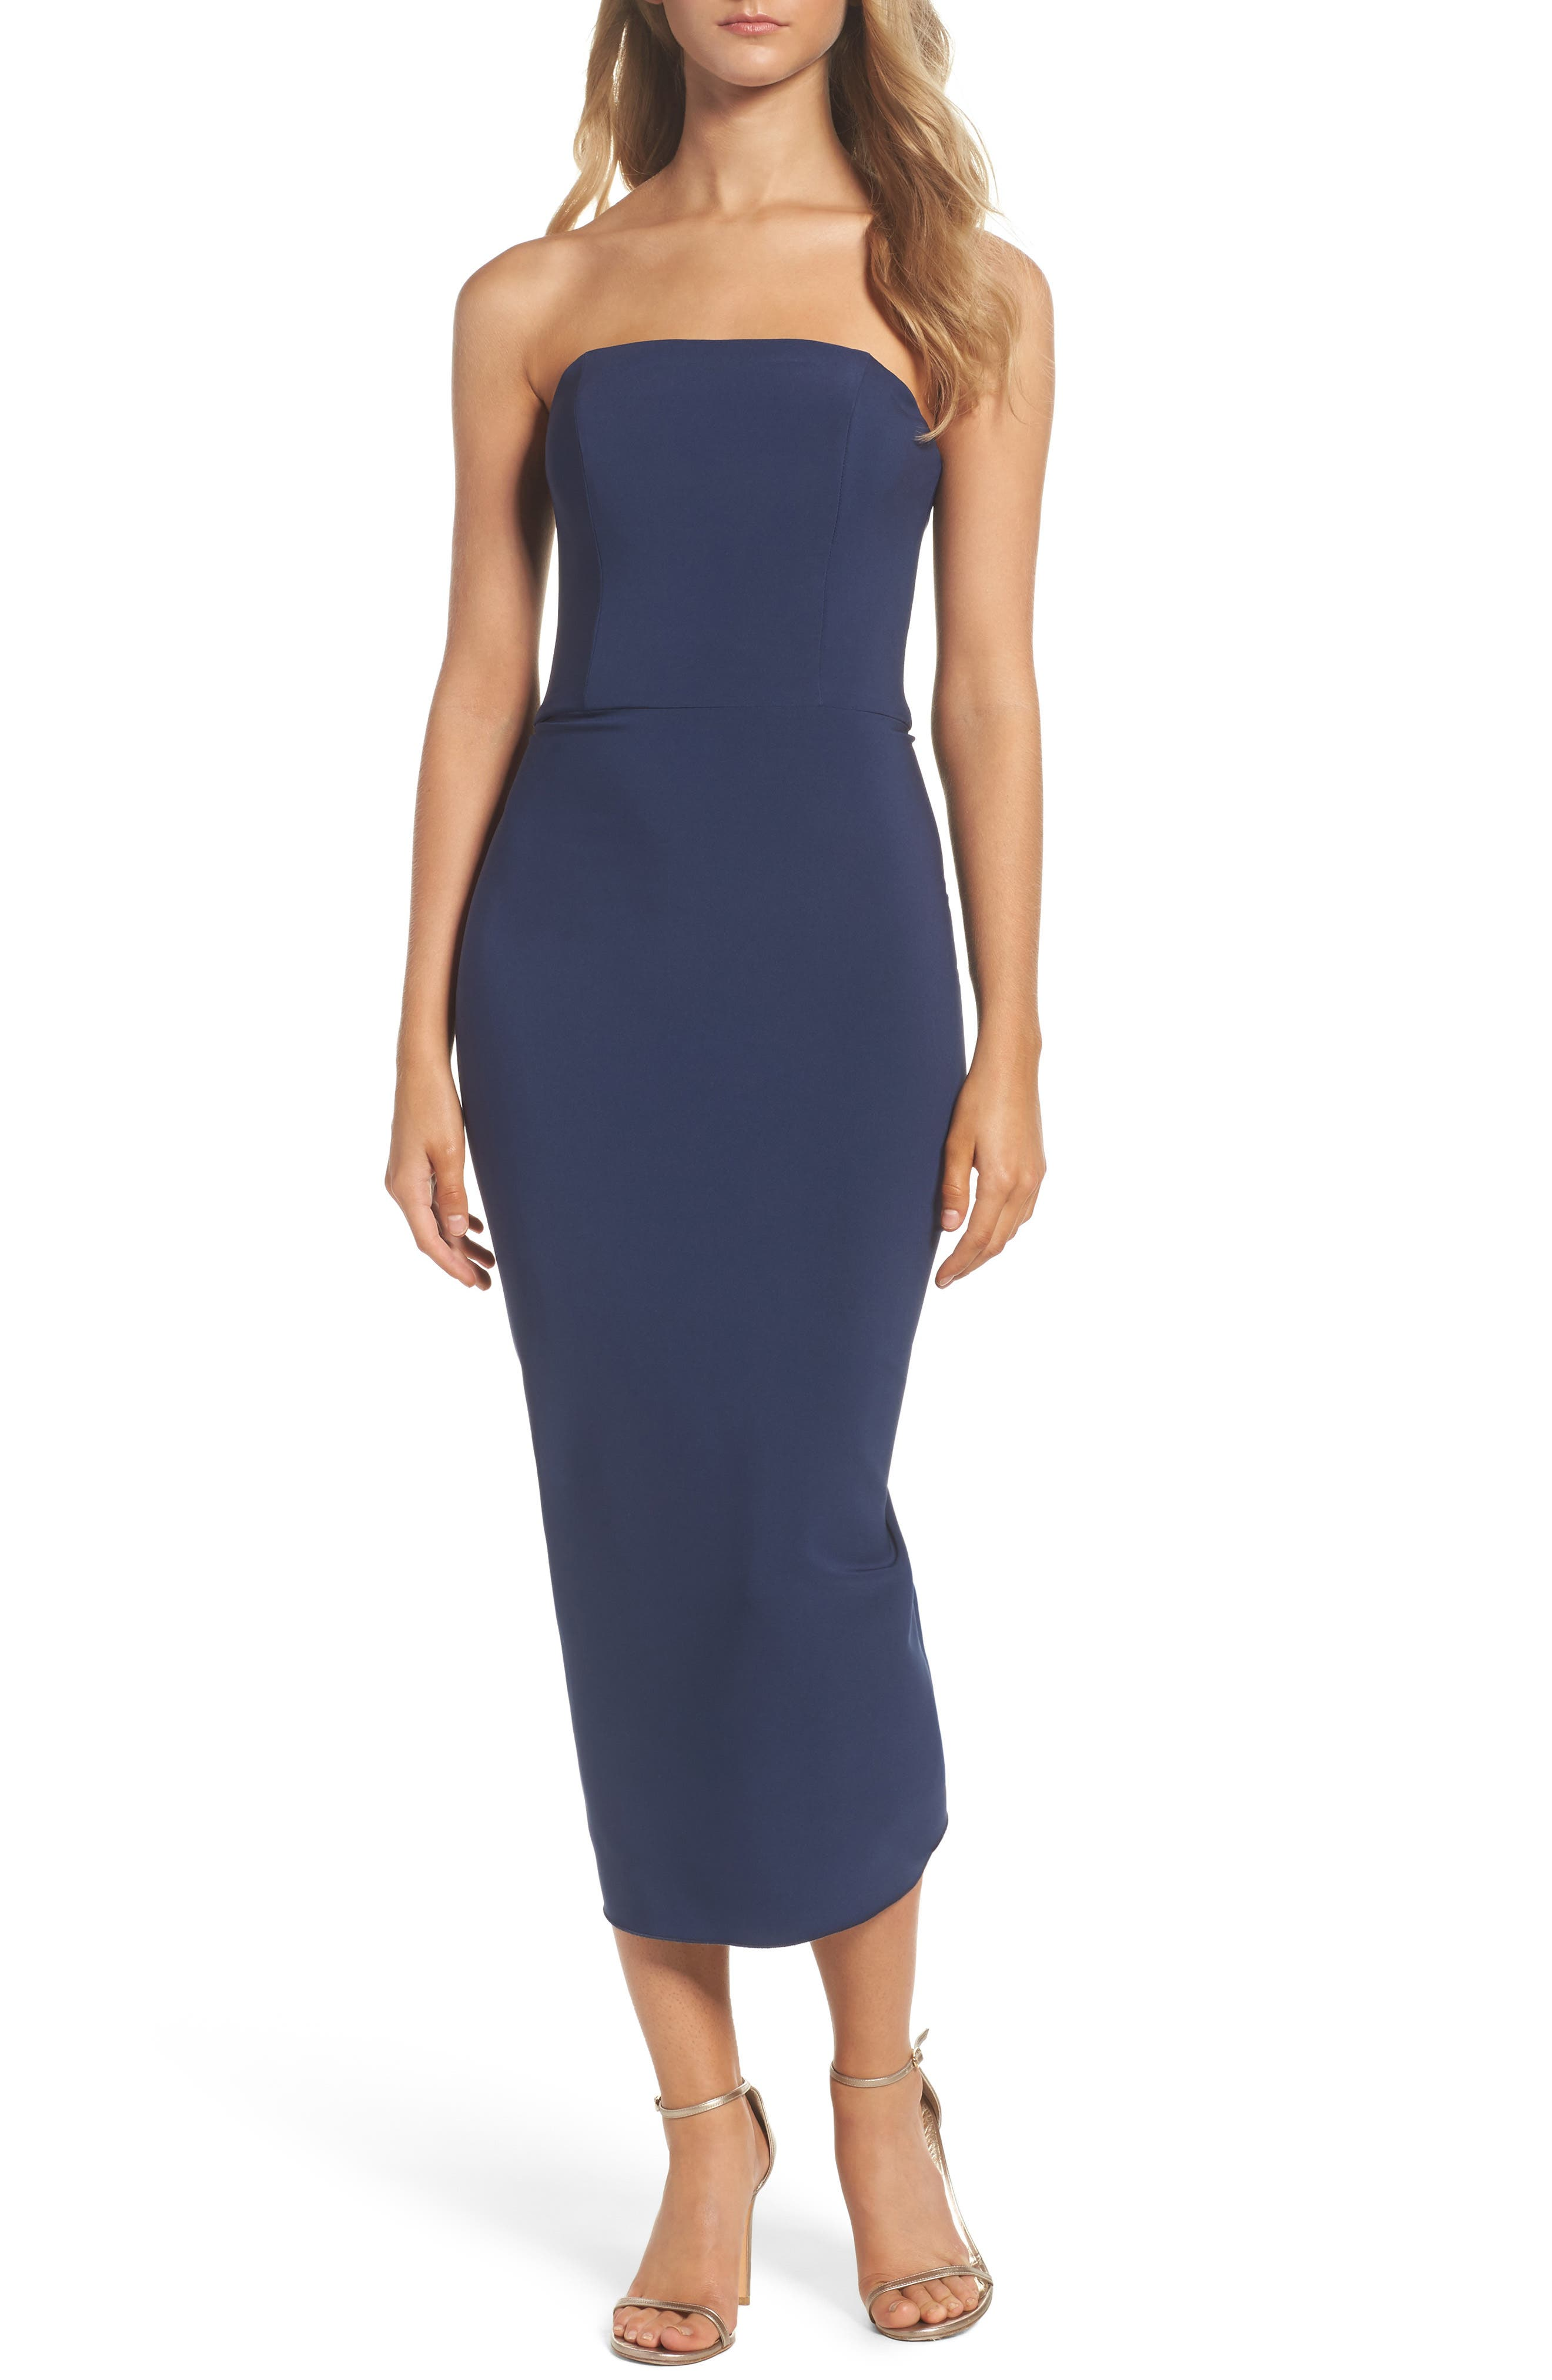 Strapless Ruffle Dress,                         Main,                         color, Navy